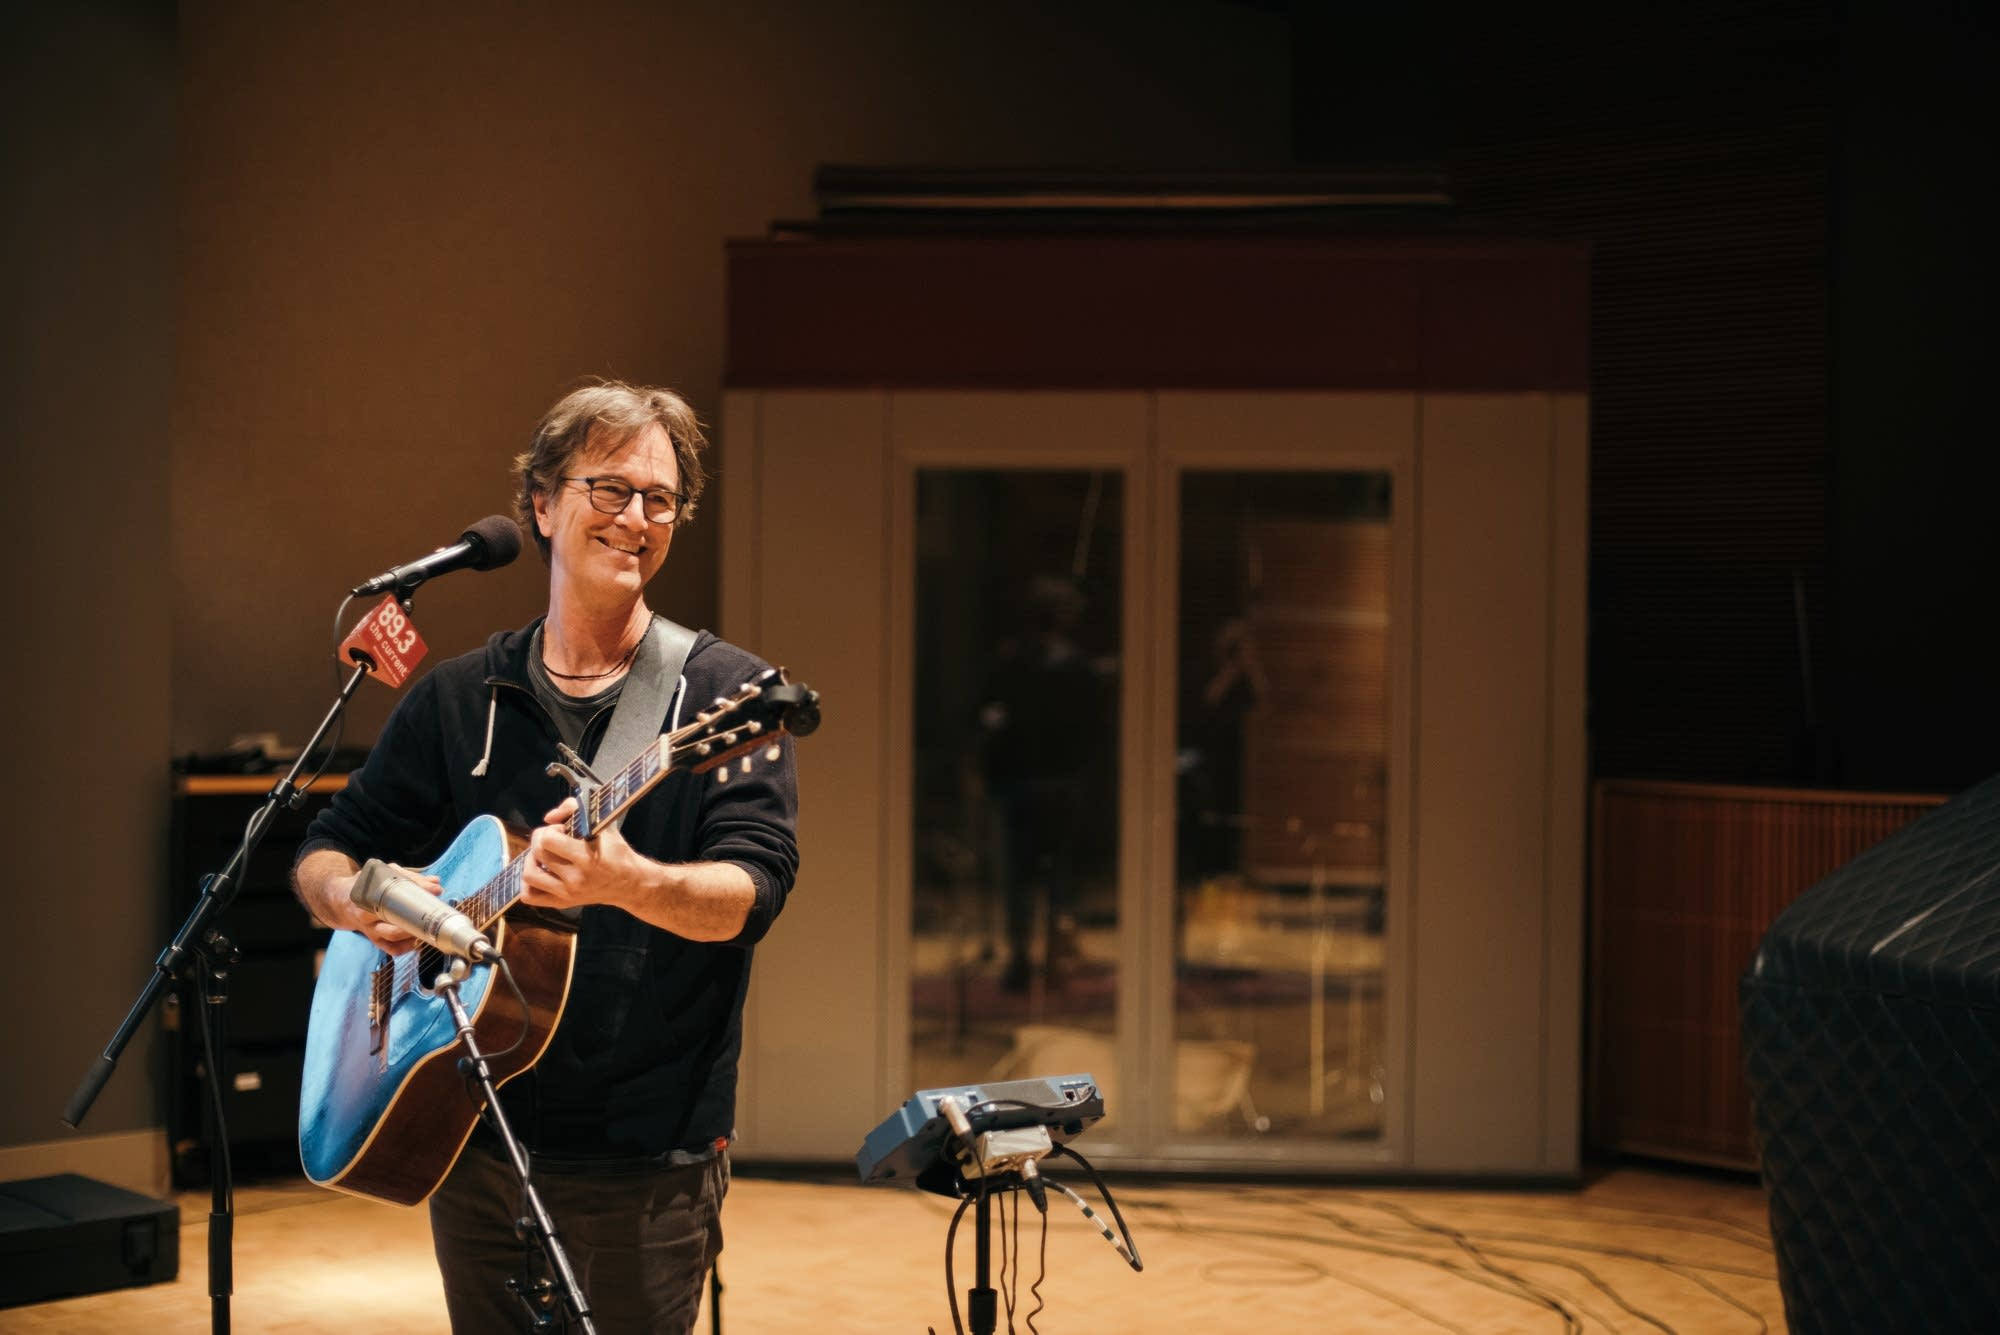 Dan Wilson performs in The Current studio